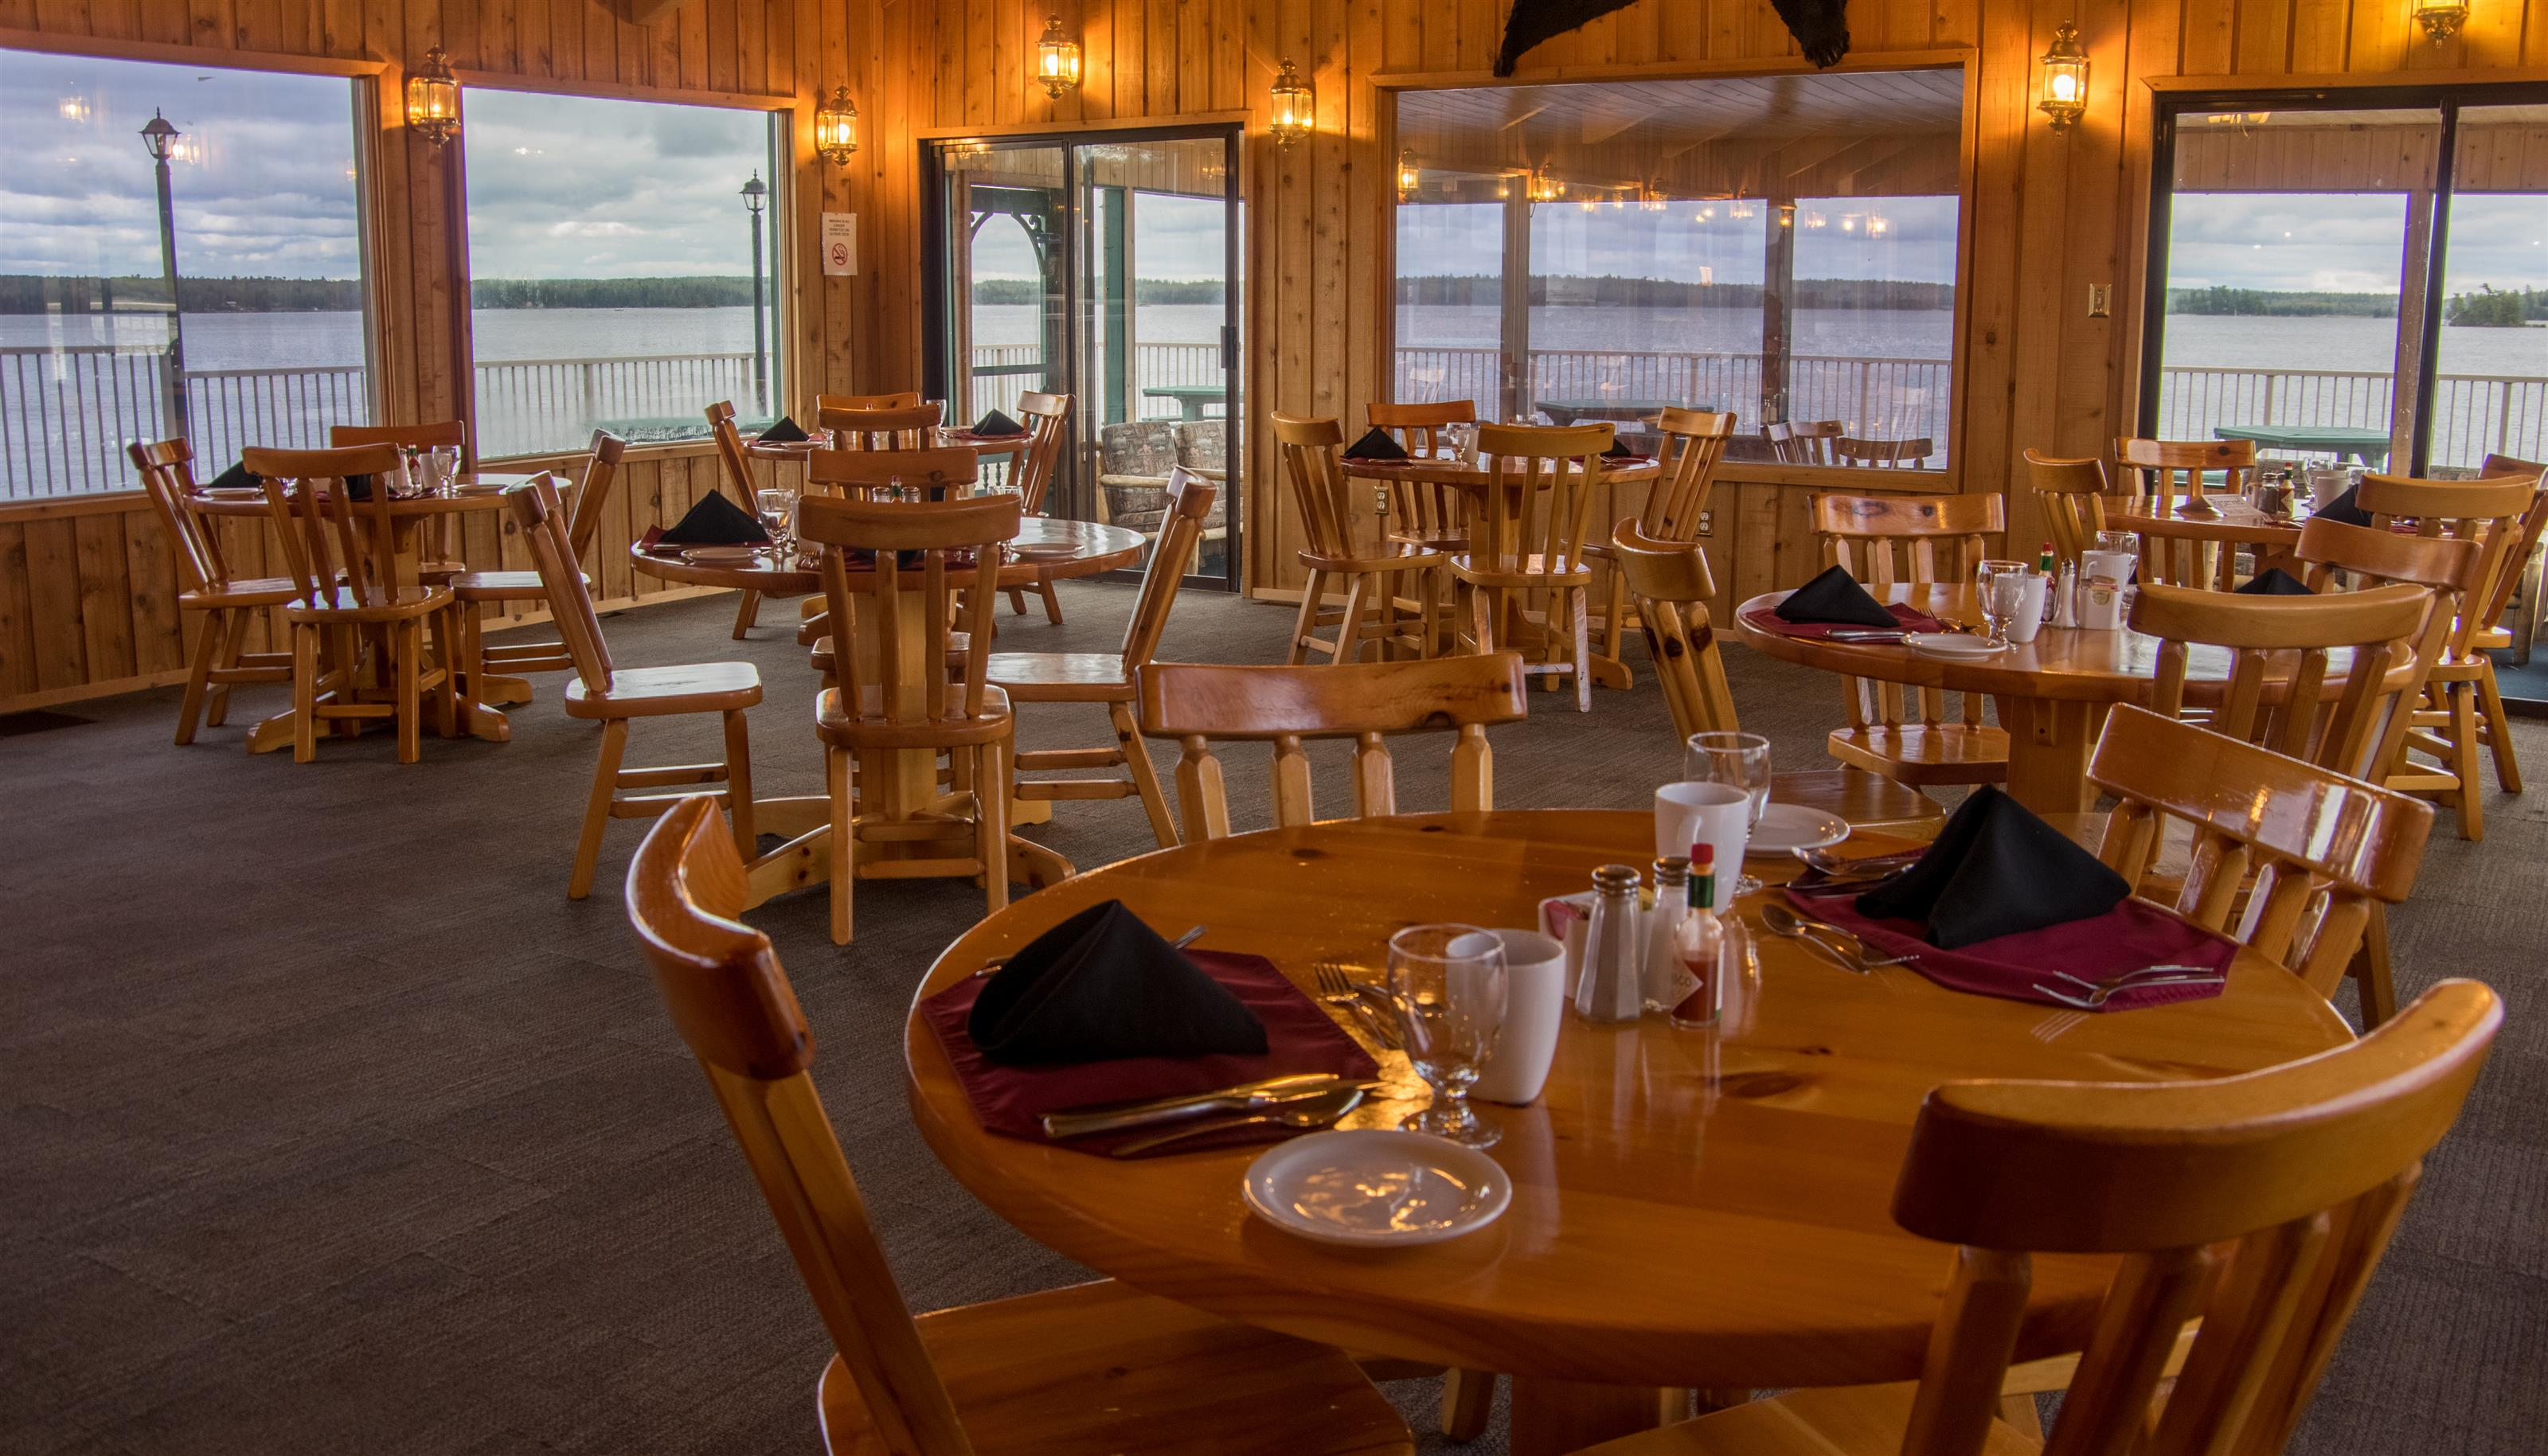 dining area of the lodge set up with tables and chairs